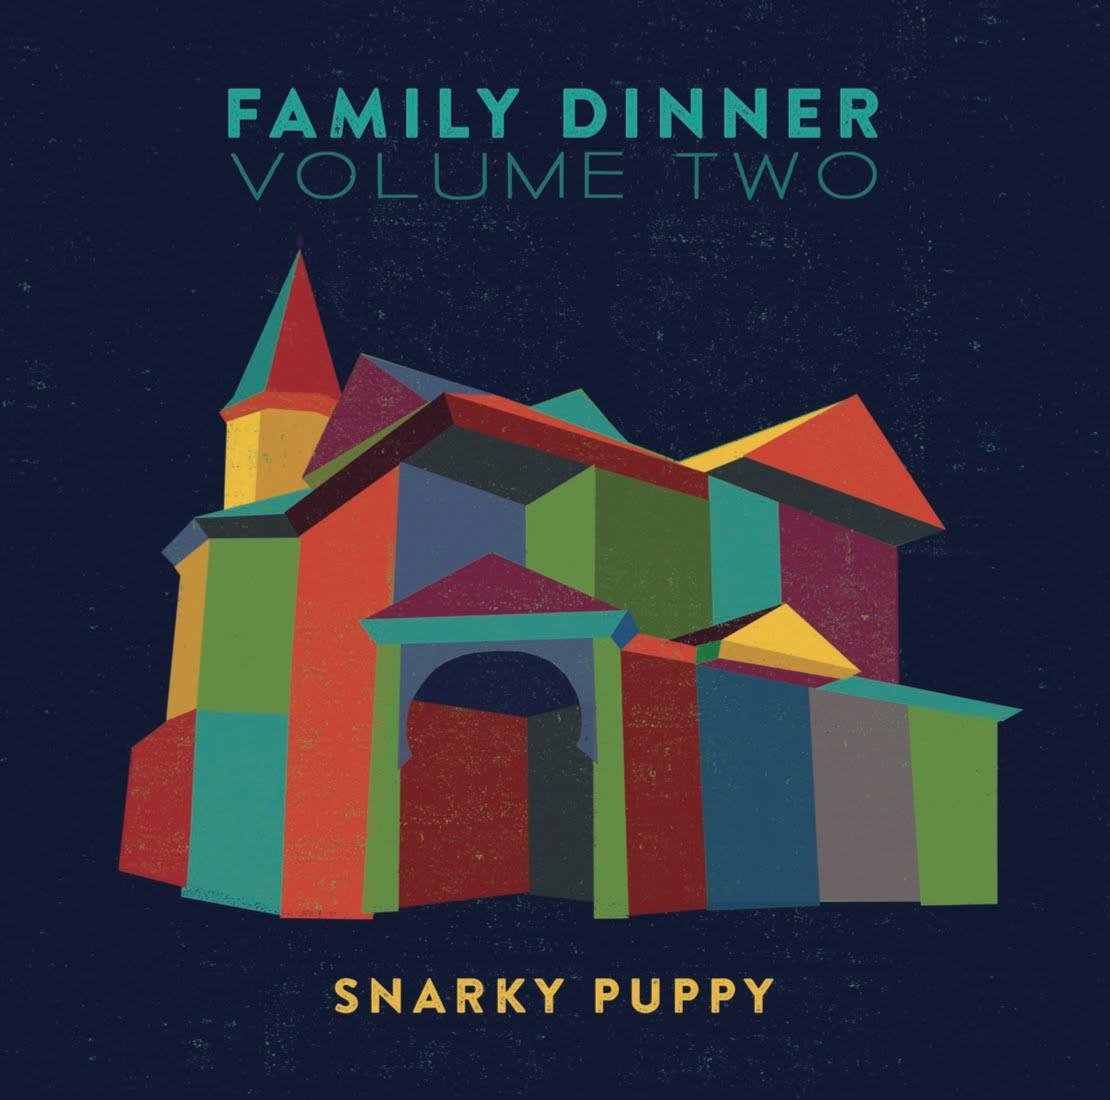 4775105 Universal  Snarky Puppy Family Dinner Volume Two (2LP+DVD)